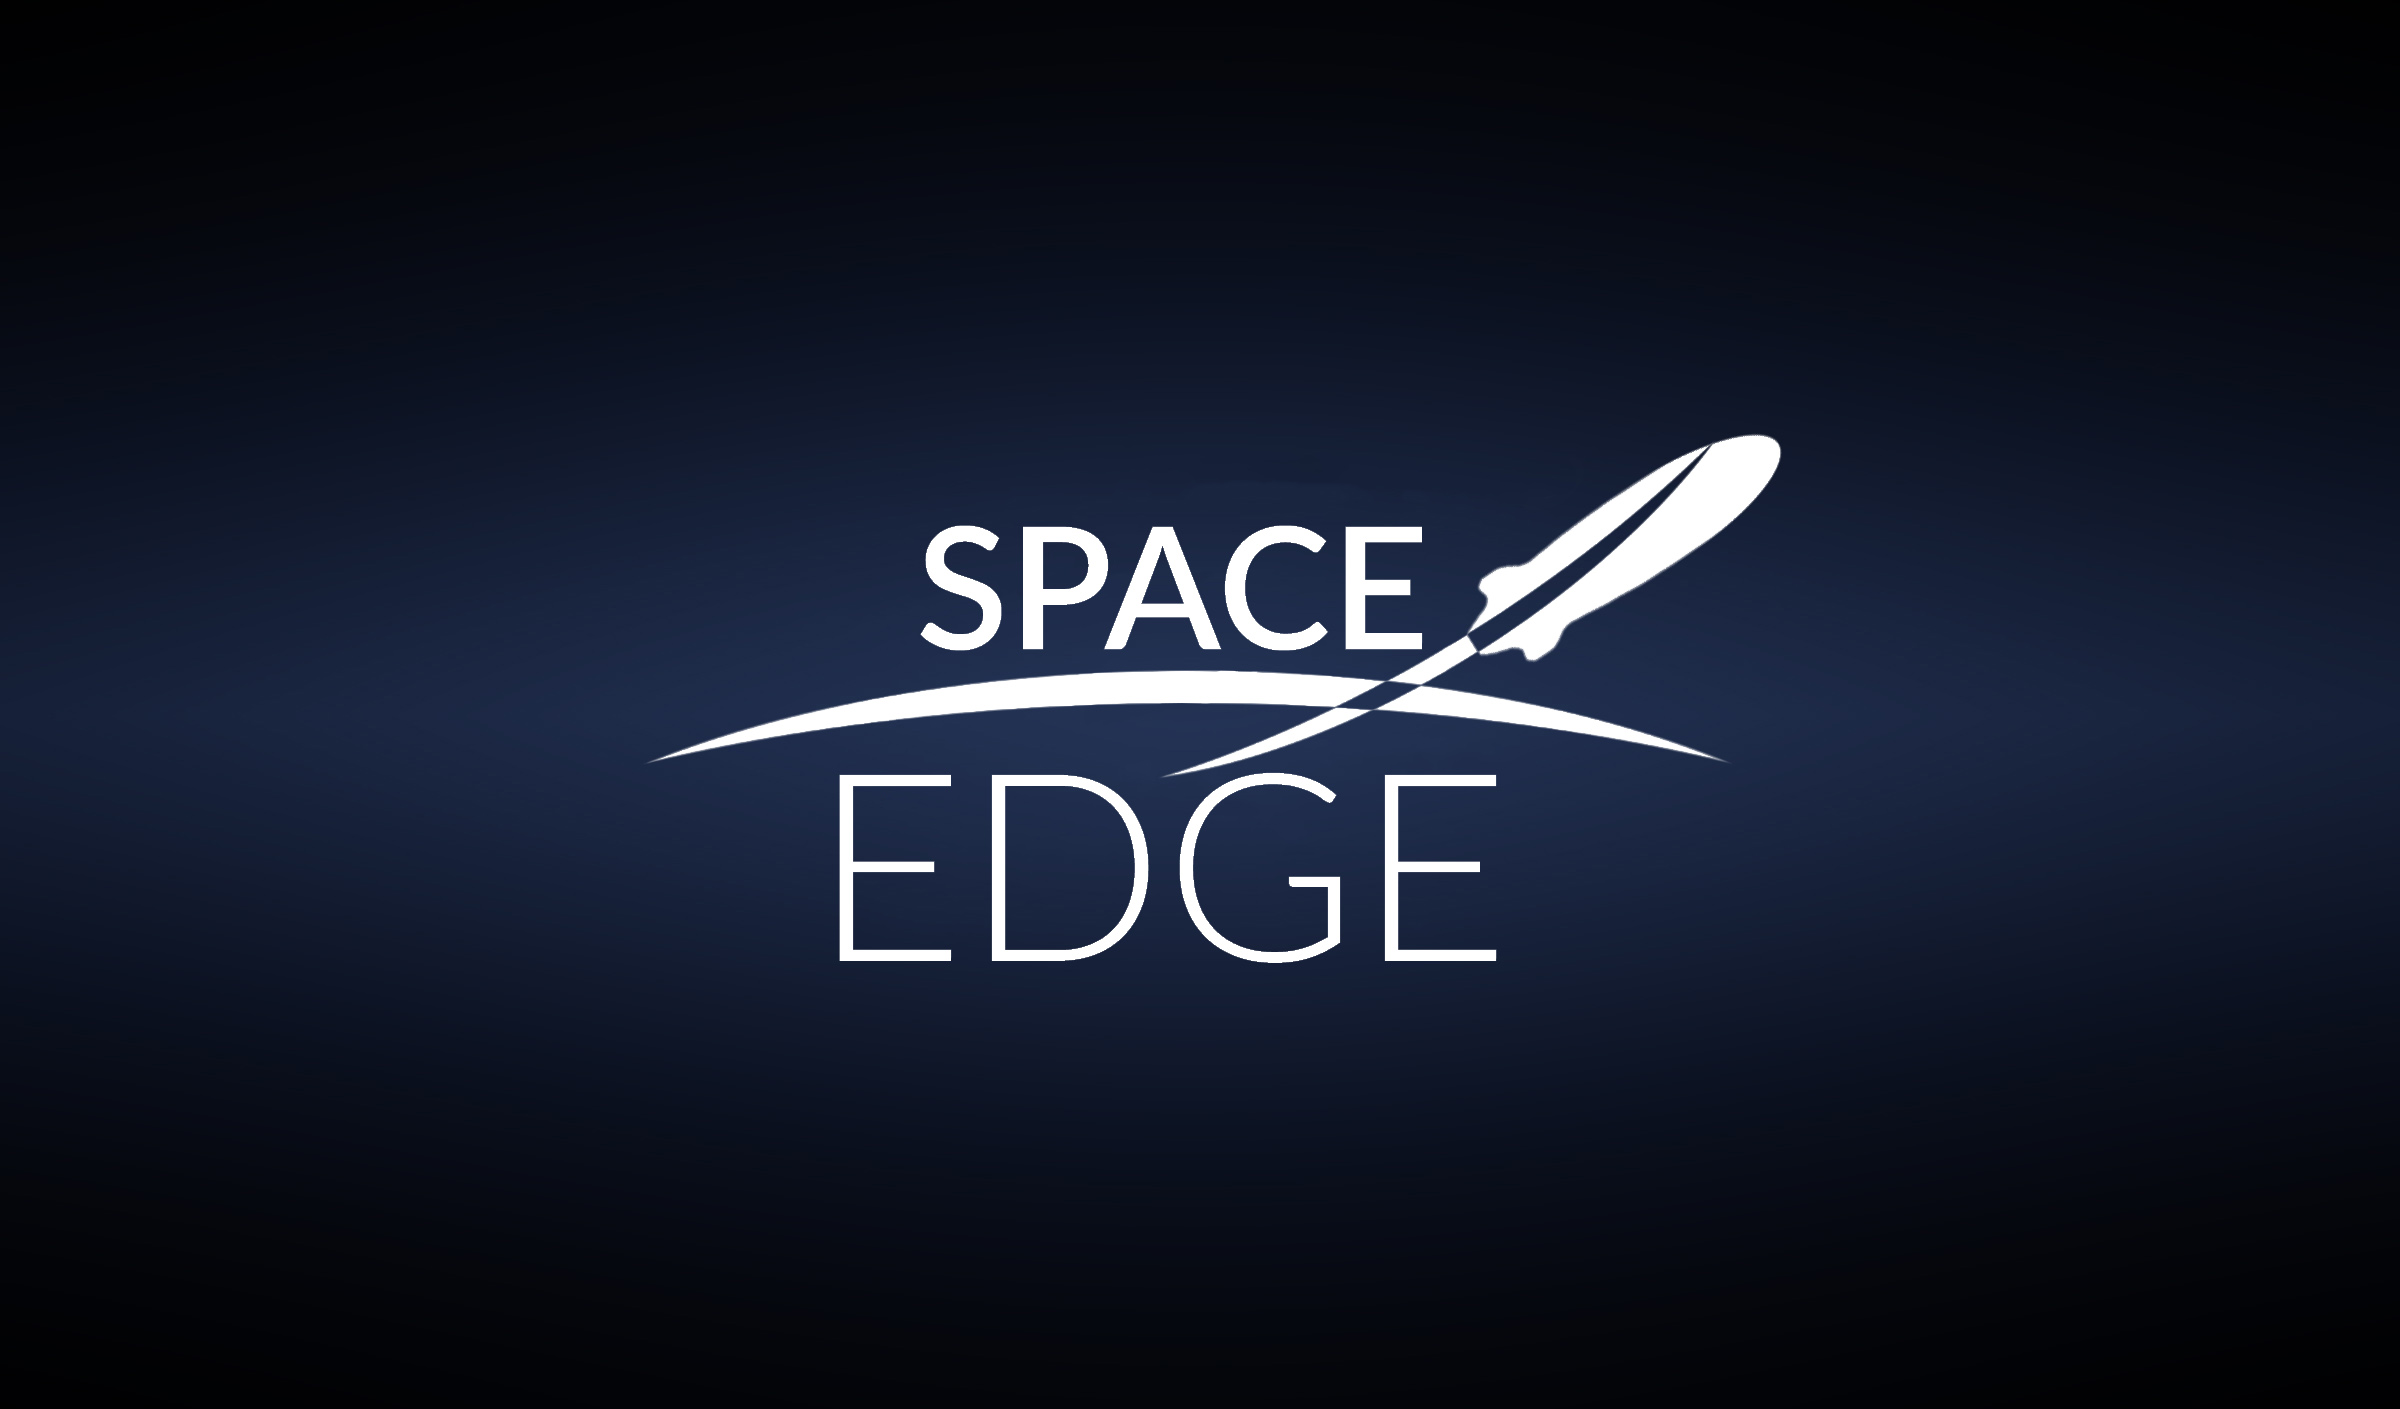 SpaceEdge_LOGO